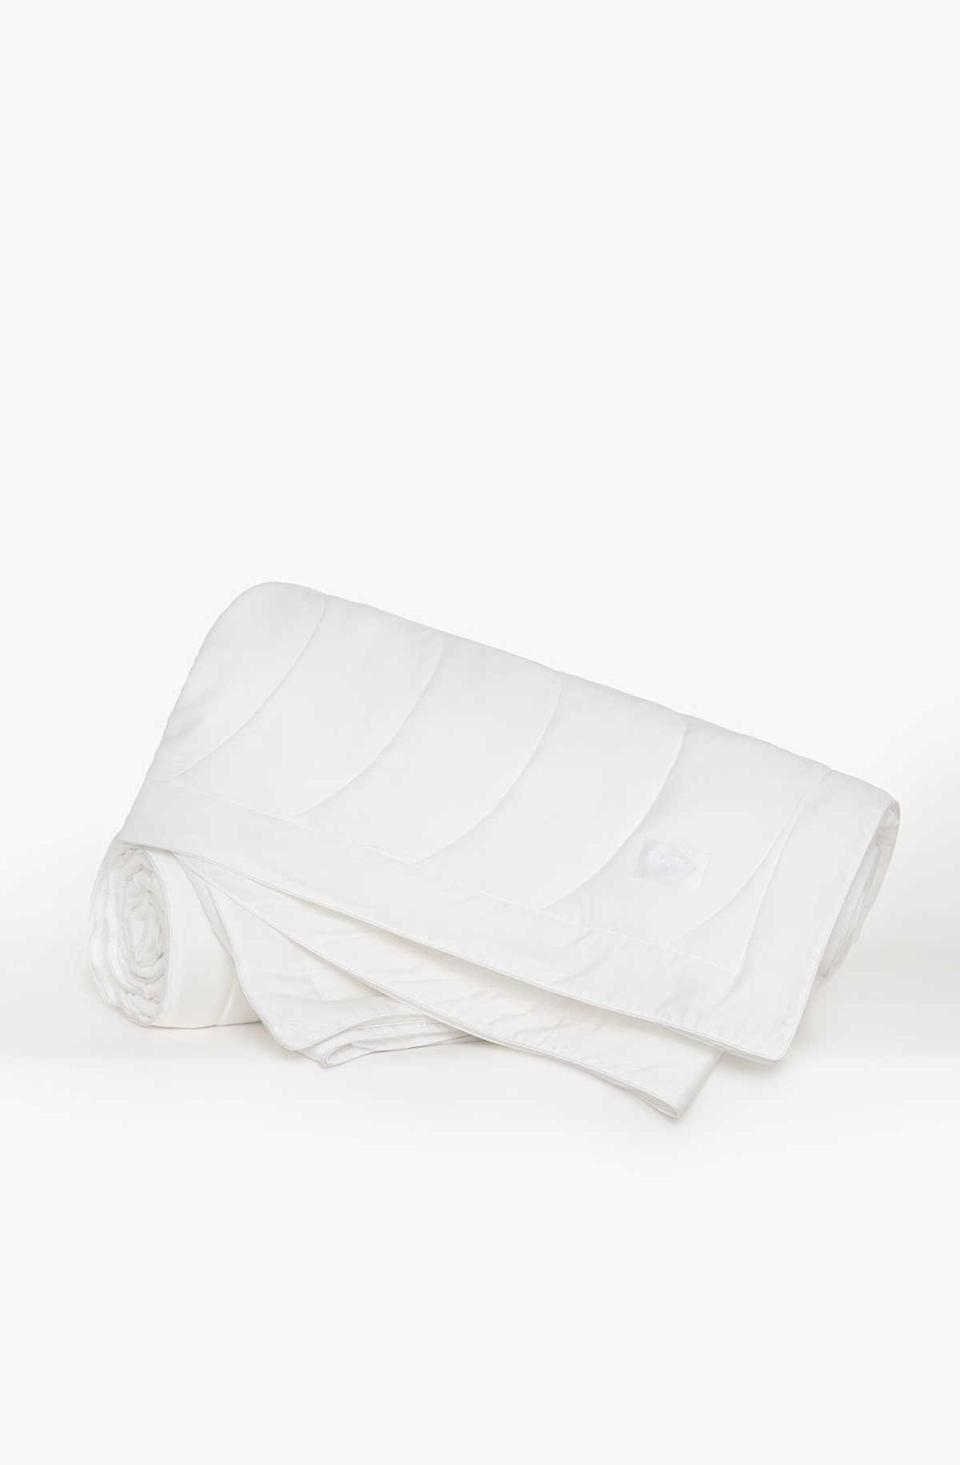 """<h3>Bedding</h3><br><h2>Buffy</h2><br><strong>Dates:</strong> Now - September 8<br><strong>Sale:</strong> $20 off orders worth $100+<br><strong>Promo Code:</strong> SEEYASUMMER20<br><br>Buffy has a cult following for a reason; all their home goods elevate a living space without making the planet uncomfortable. <br><br><strong><a href=""""https://buffy.co/?skimoffer=skimusQ1"""" rel=""""nofollow noopener"""" target=""""_blank"""" data-ylk=""""slk:Shop Buffy"""" class=""""link rapid-noclick-resp""""><em>Shop Buffy</em></a> </strong><br><br><strong>Buffy</strong> The Buffy Breeze, $, available at <a href=""""https://go.skimresources.com/?id=30283X879131&url=https%3A%2F%2Fbuffy.co%2Fproducts%2Fbreeze-comforter"""" rel=""""nofollow noopener"""" target=""""_blank"""" data-ylk=""""slk:Buffy"""" class=""""link rapid-noclick-resp"""">Buffy</a>"""